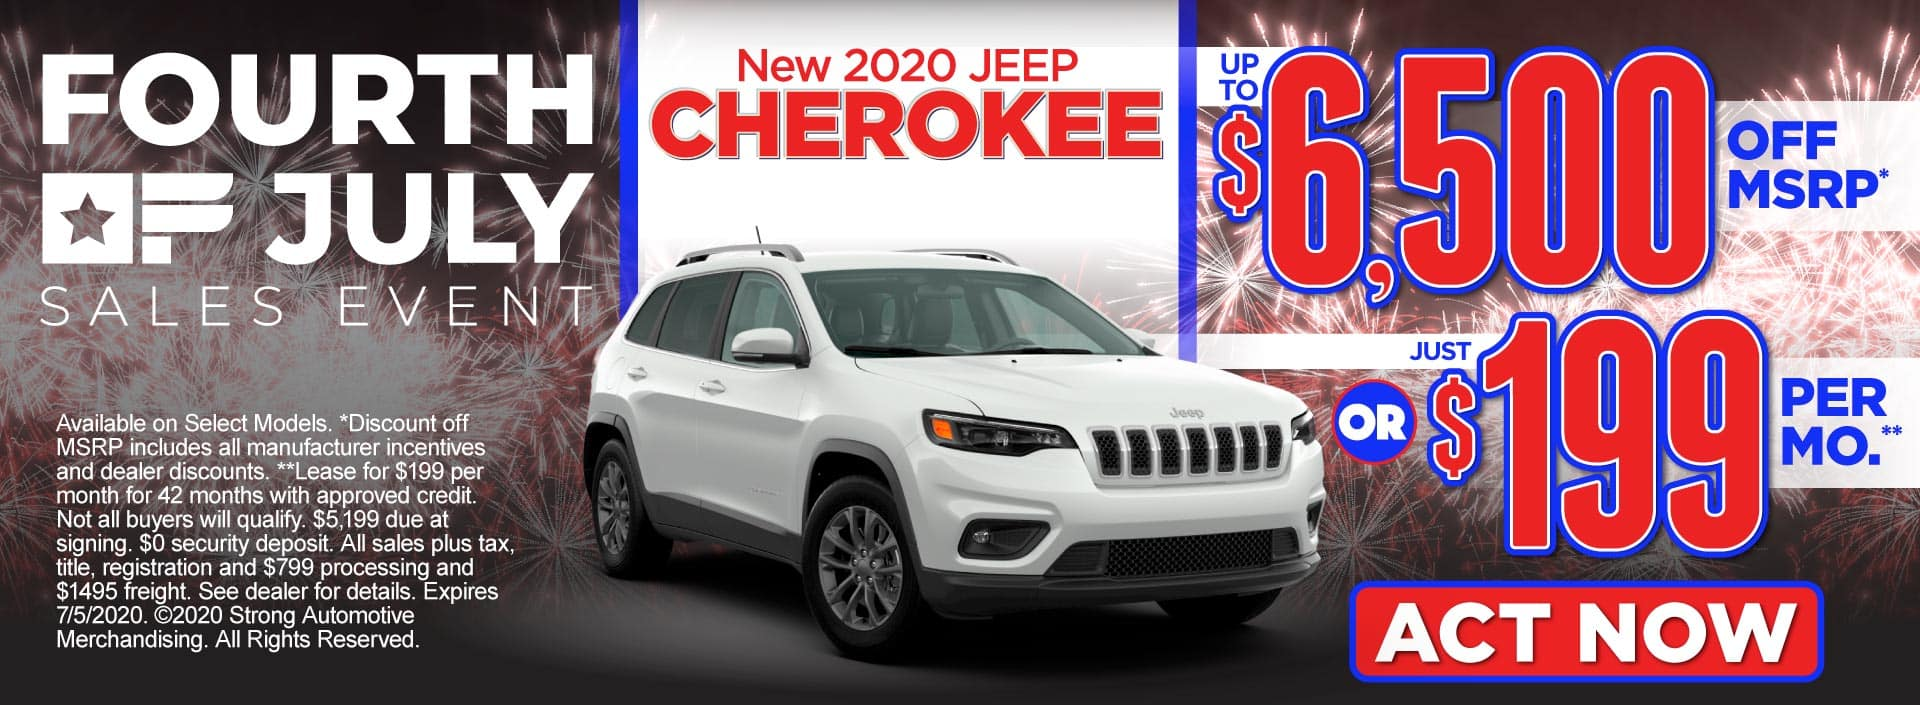 New 2020 Jeep Cherokee – up to $6,500 off MSRP* or just $199 per month** – Click to View Inventory